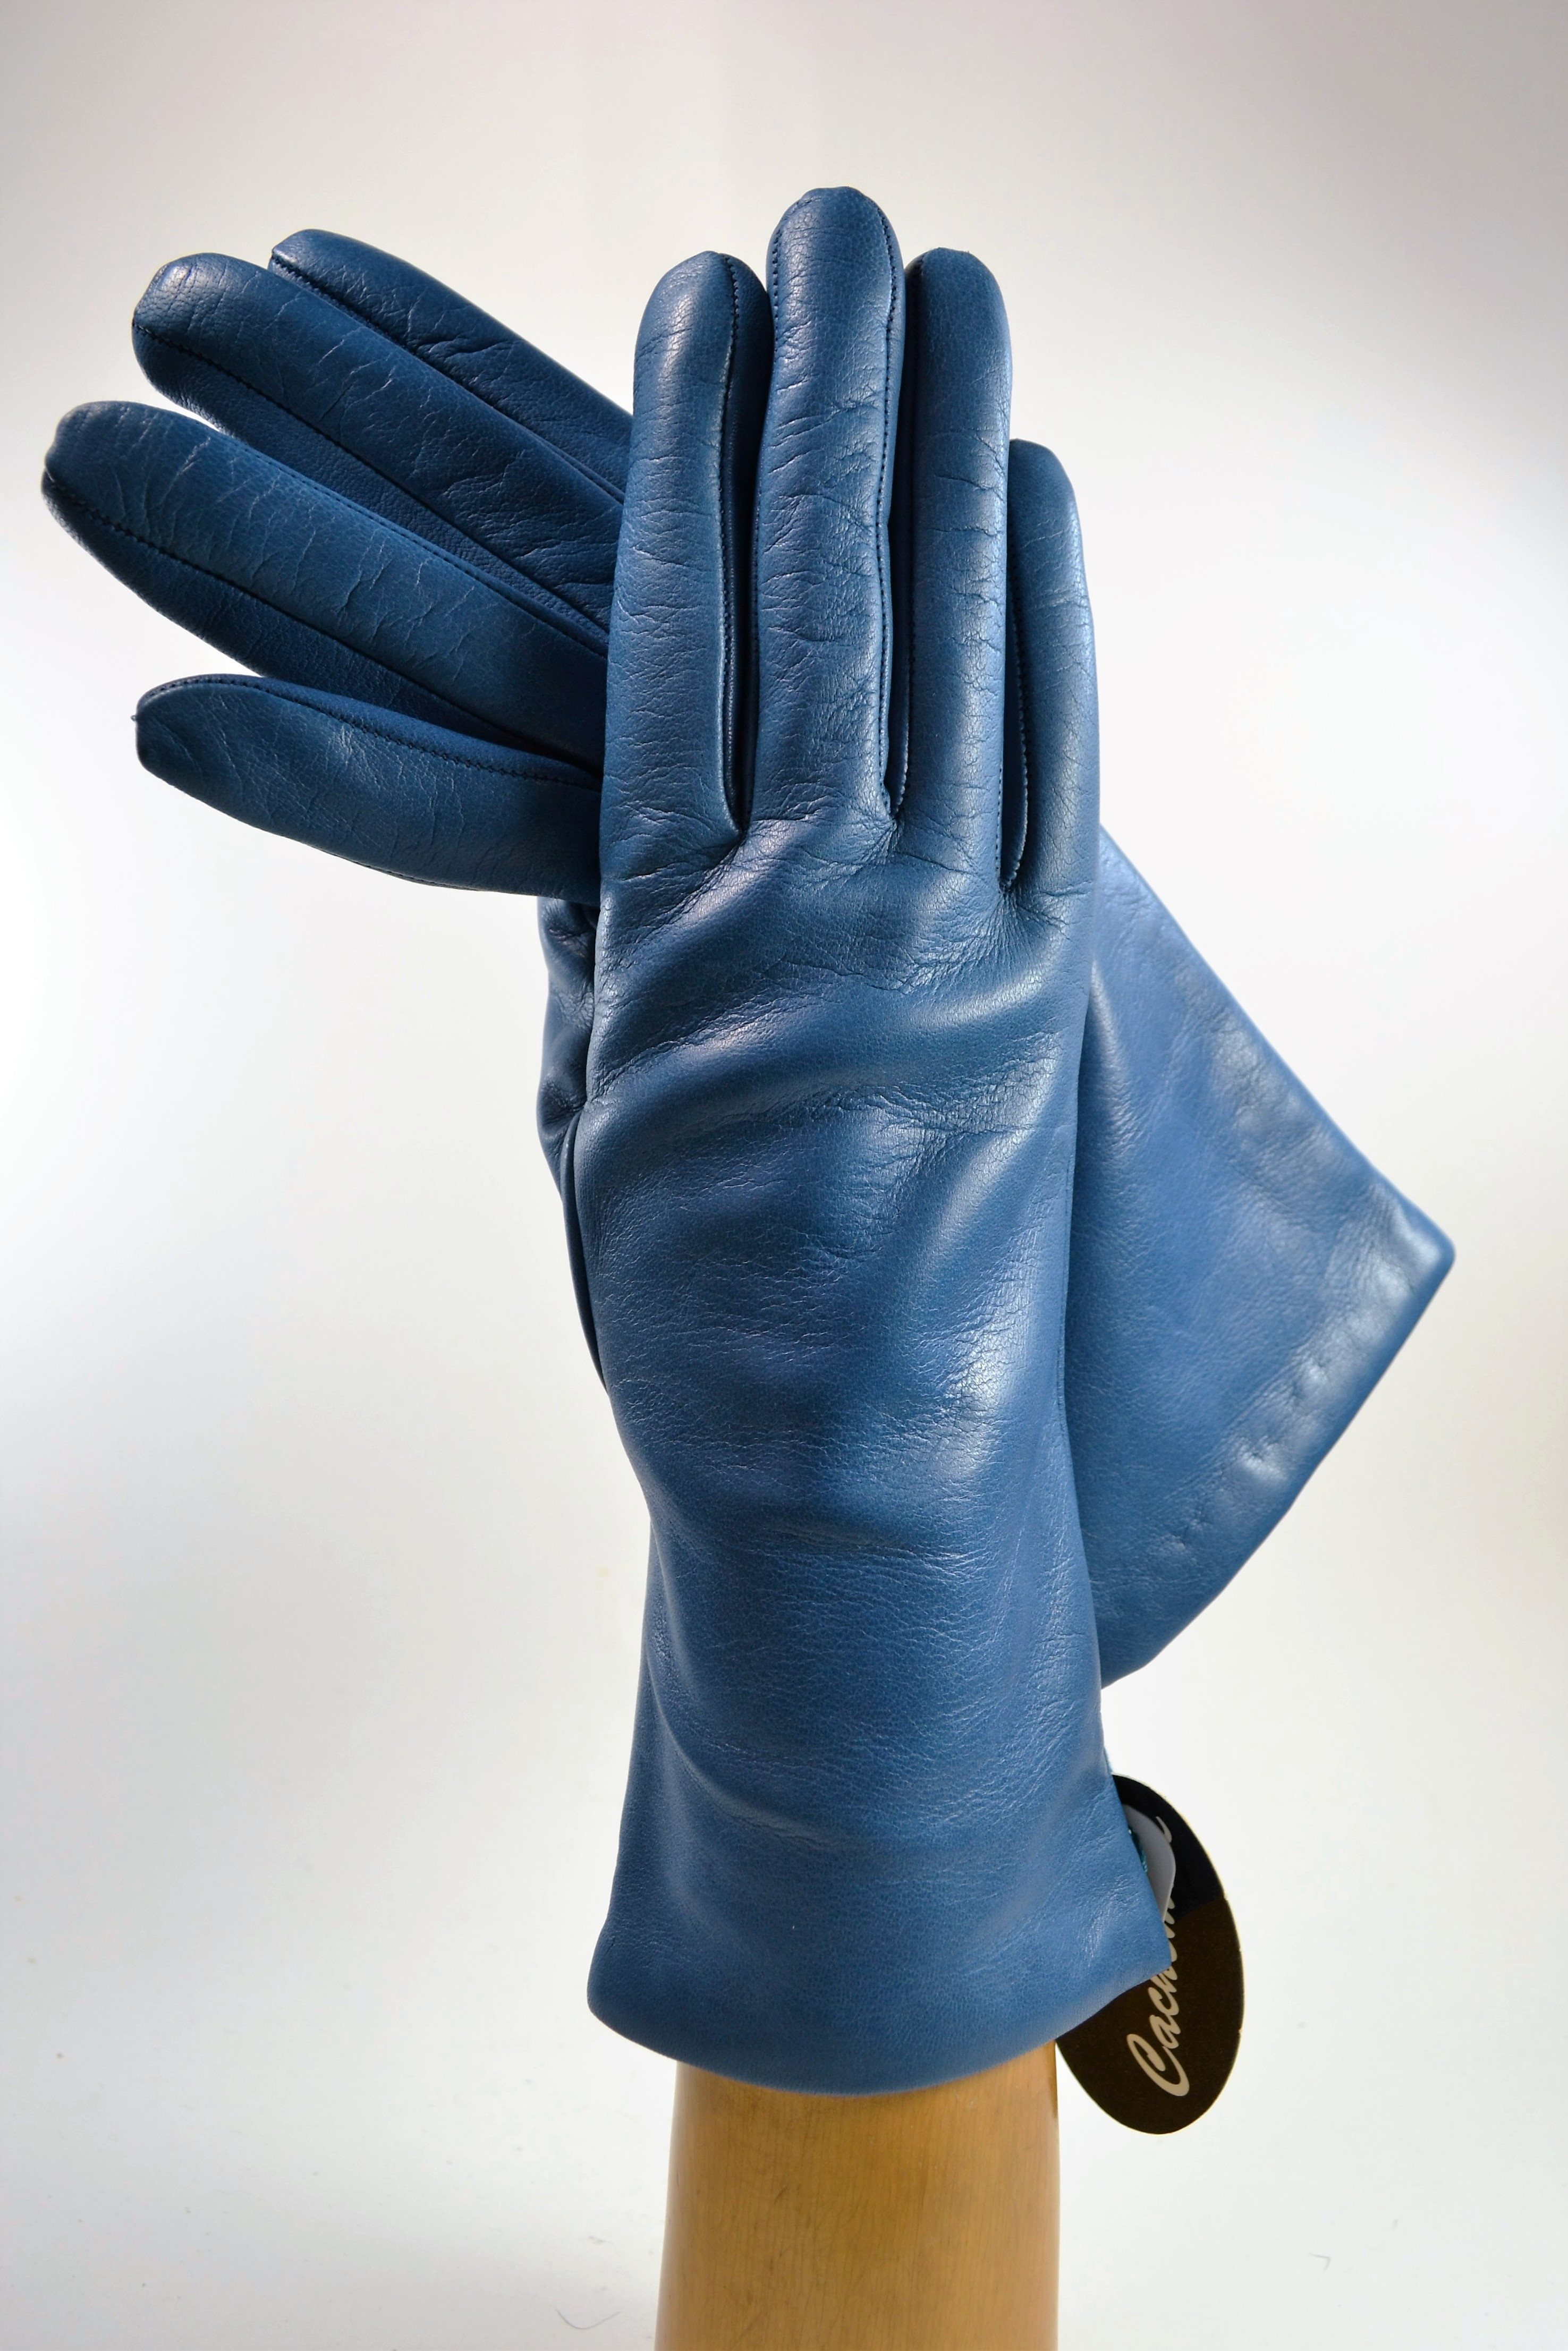 "ladies nappa gloves 3"", cashmere lined, blue lagoon"